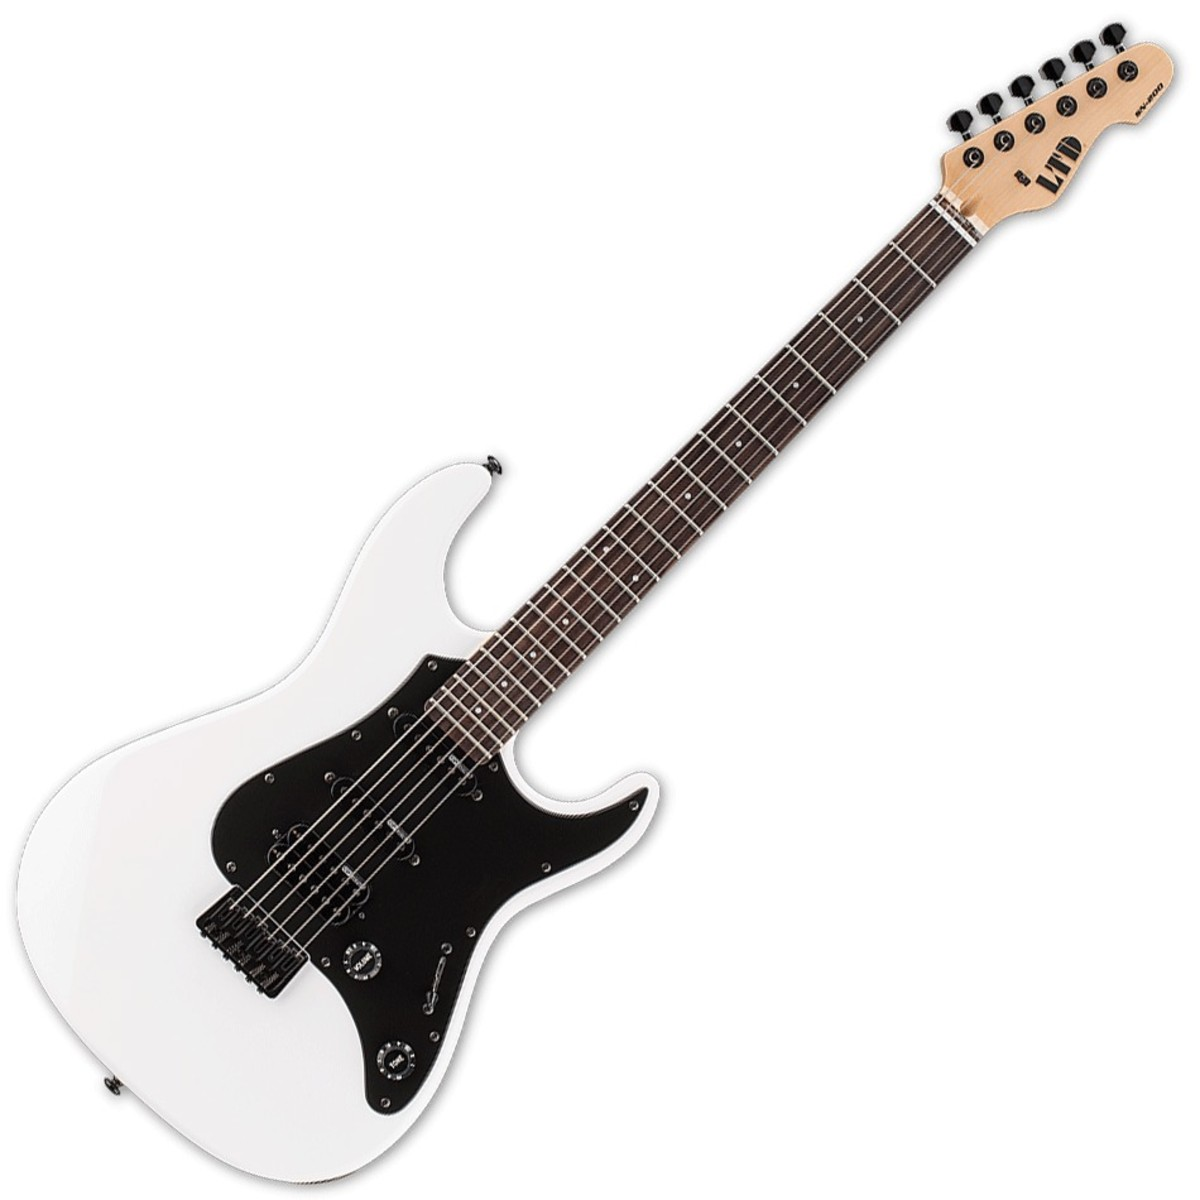 esp ltd sn 200htr electric guitar snow white at gear4music. Black Bedroom Furniture Sets. Home Design Ideas